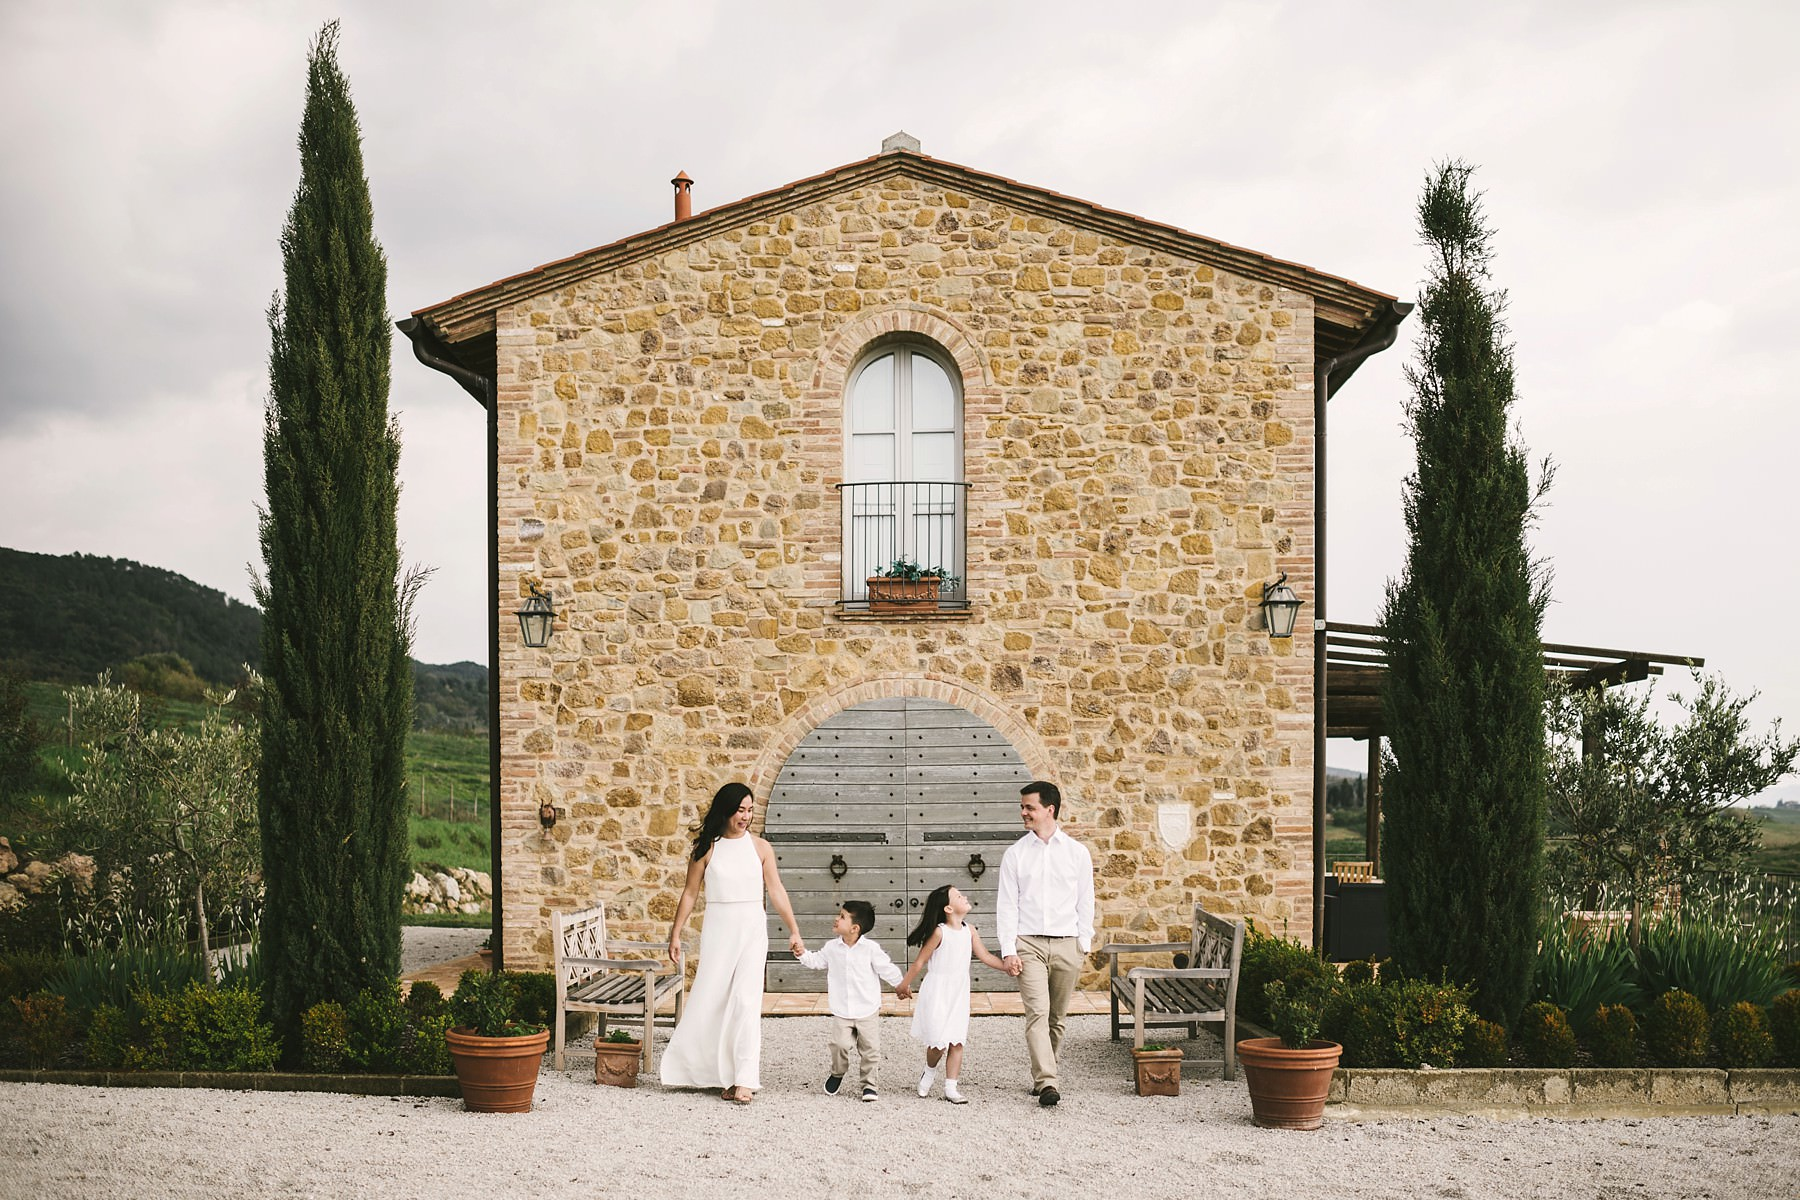 Family photos are always a good idea to celebrate a vacation in Tuscany. Enjoy a lovely fun experience and build your memories will last forever